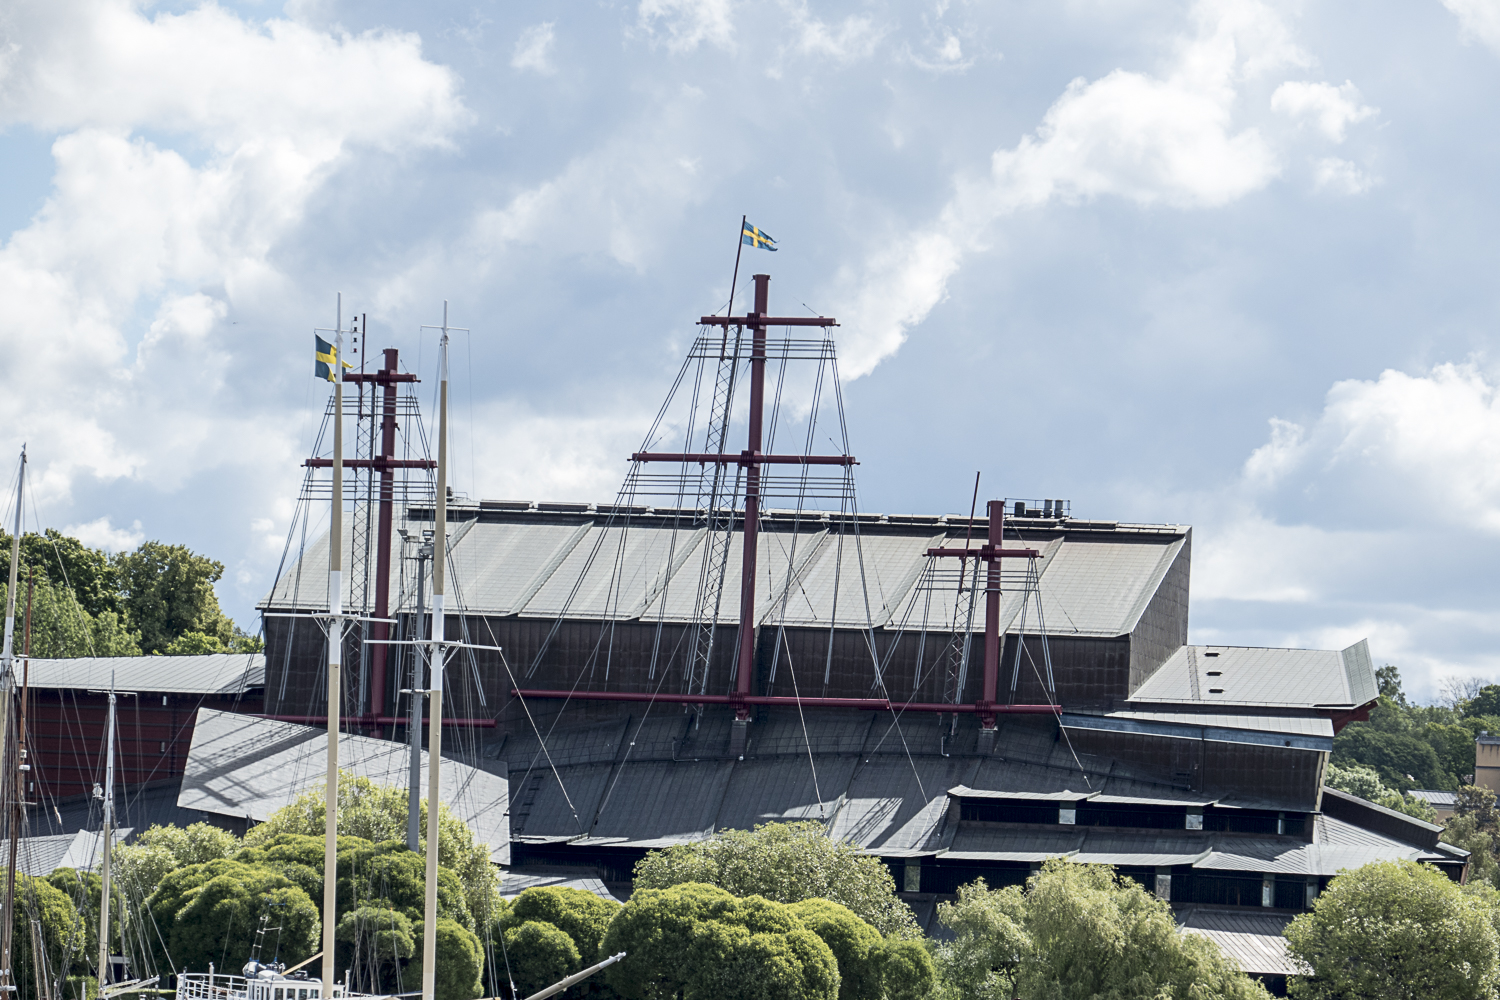 The three masts of the Vasa protruding out of the museum where the ship is displayed